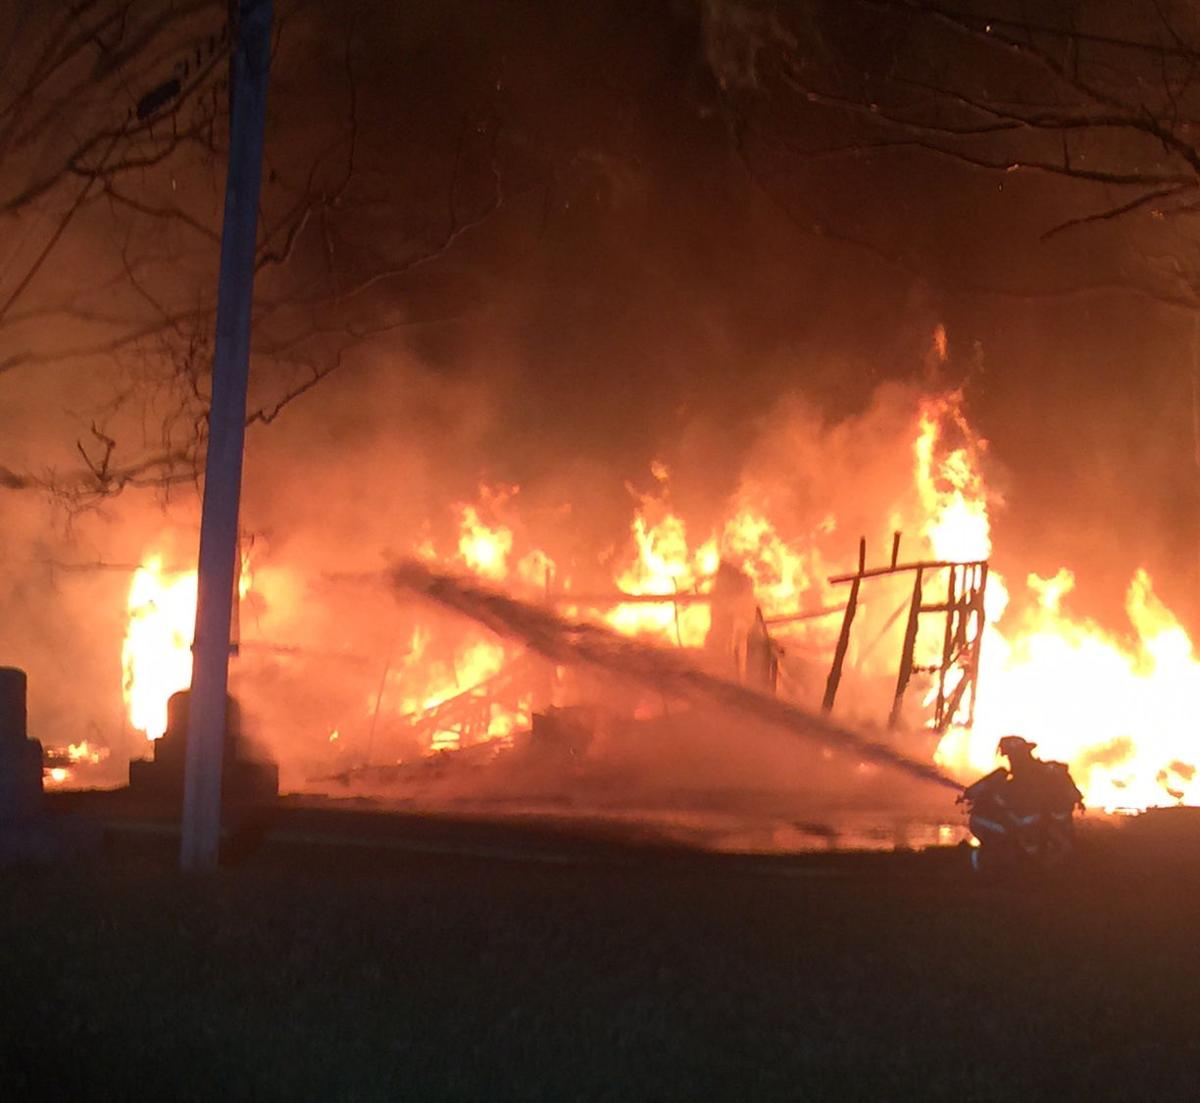 Fire destroys barn near Old Stone Fort Golf Course